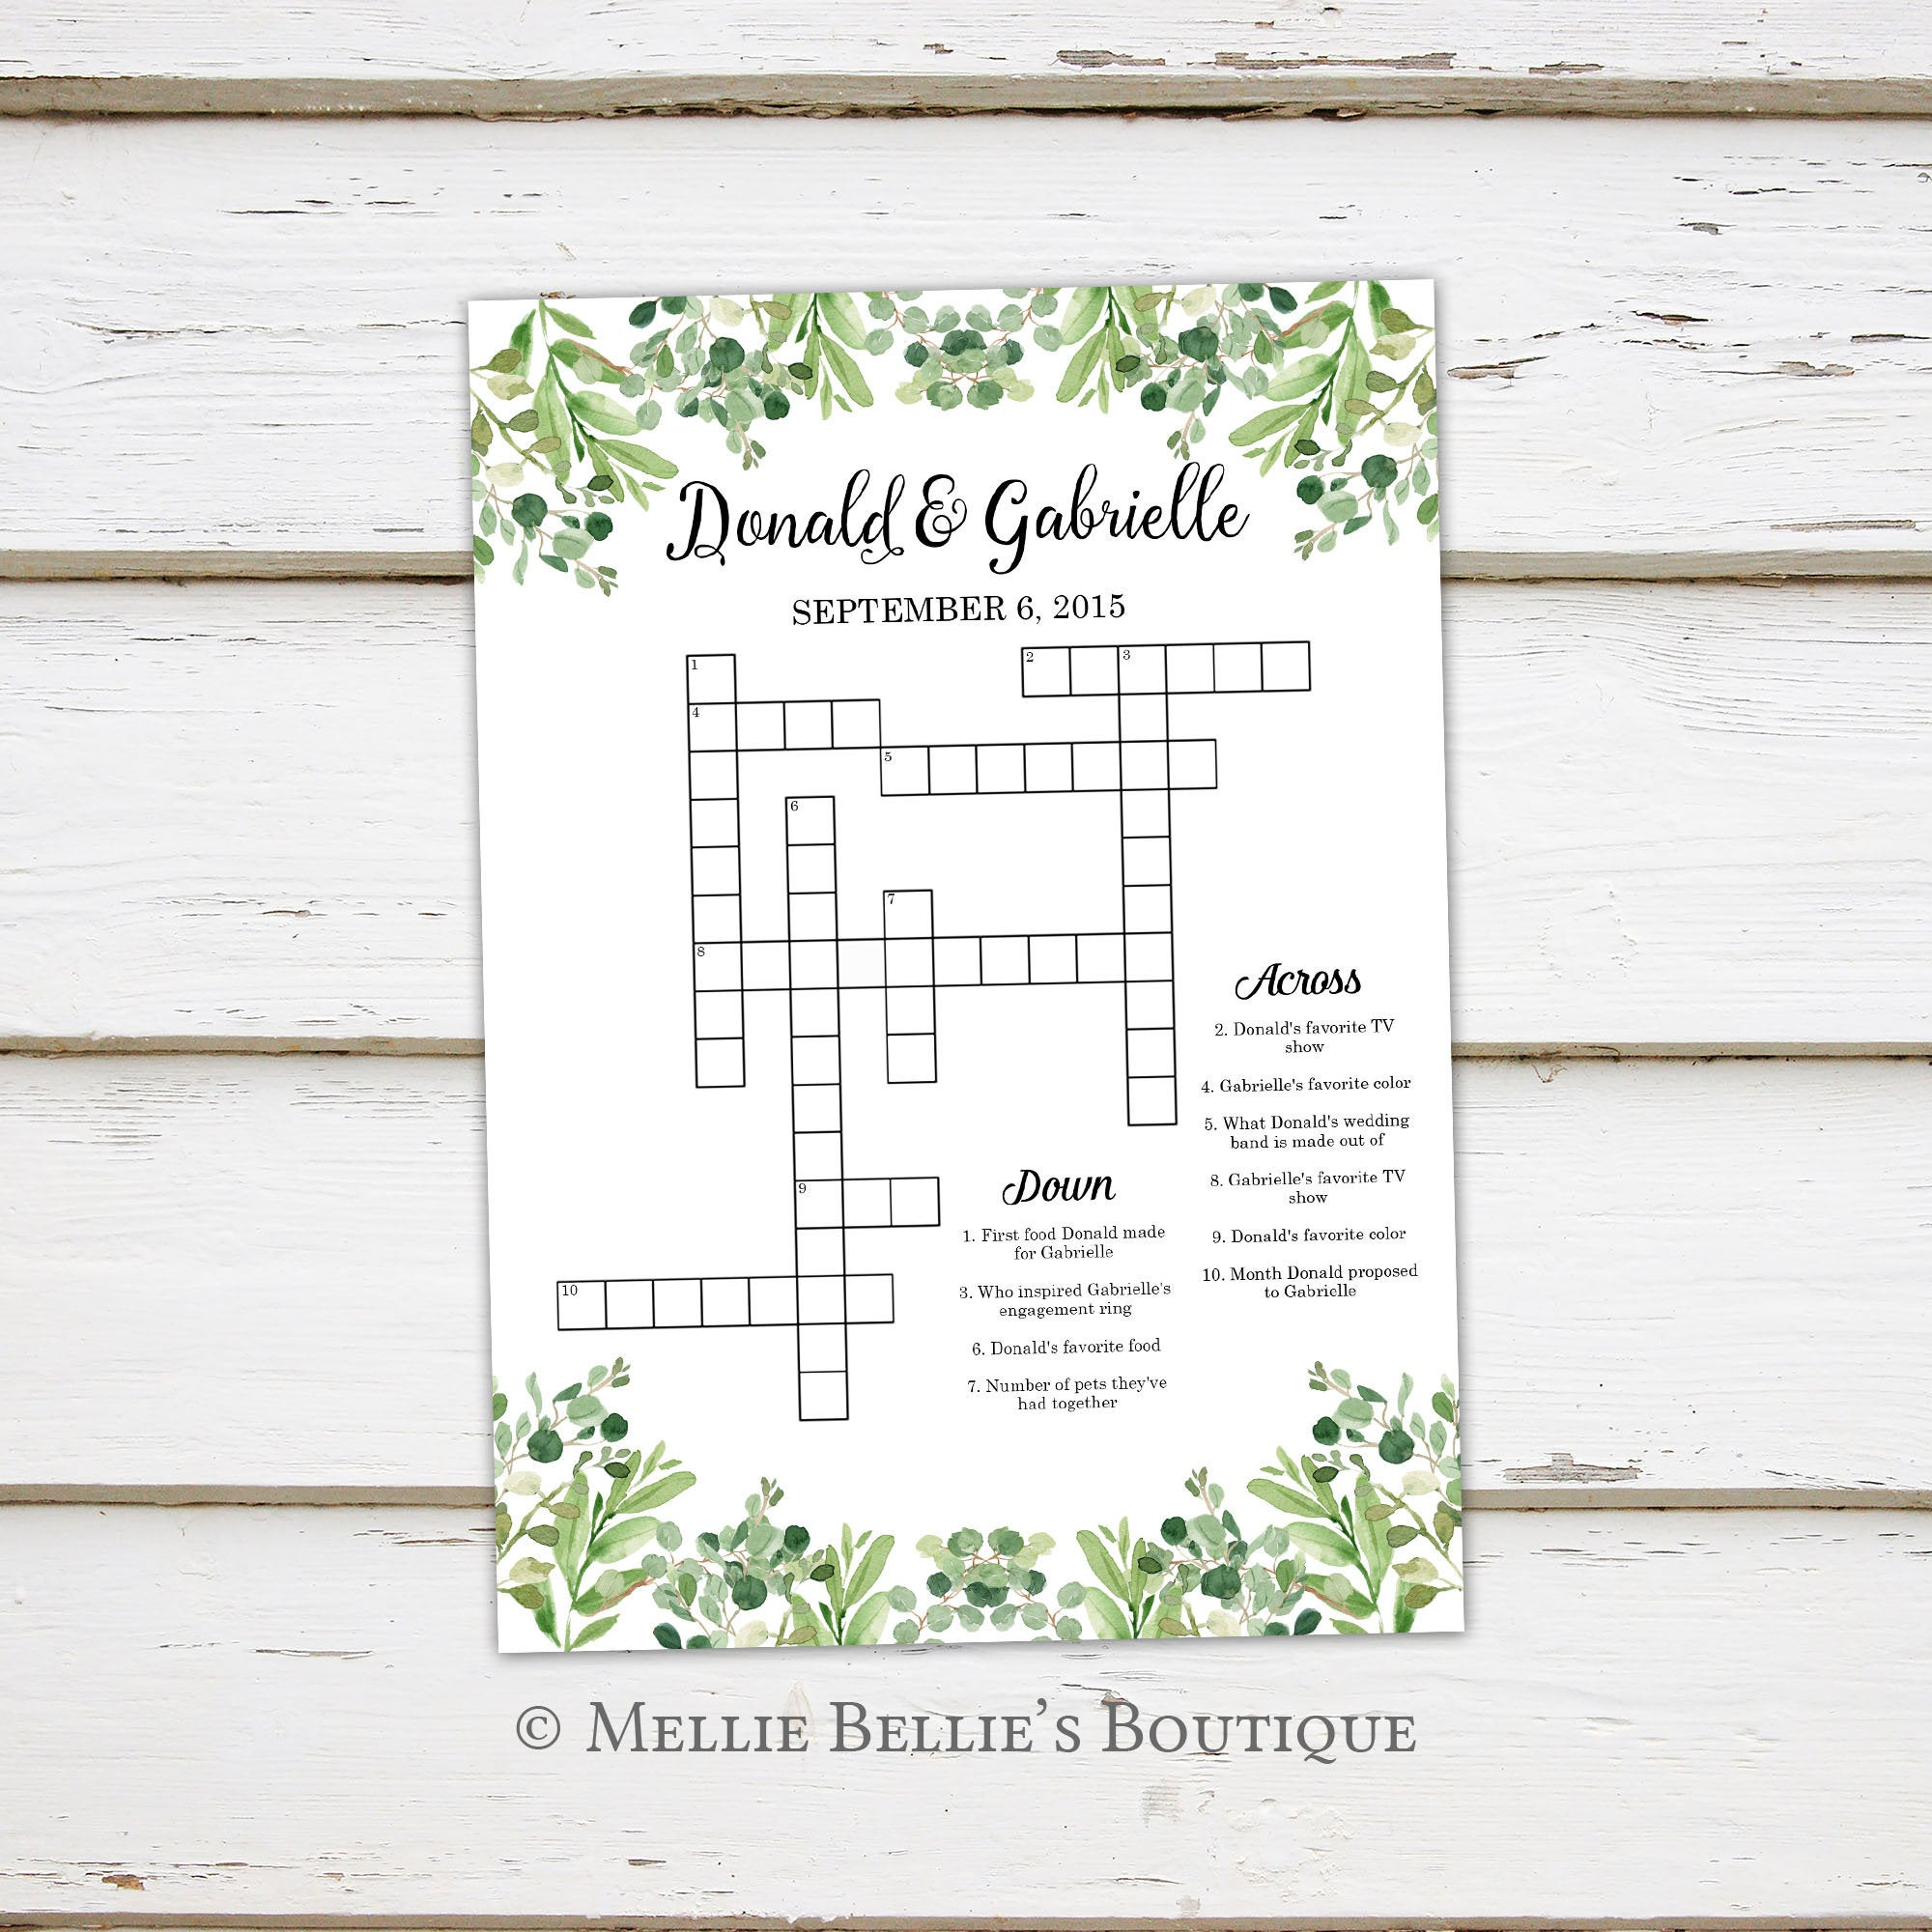 Printable Wedding Crossword Puzzle Game Games For Wedding | Etsy - Printable Wedding Crossword Puzzle